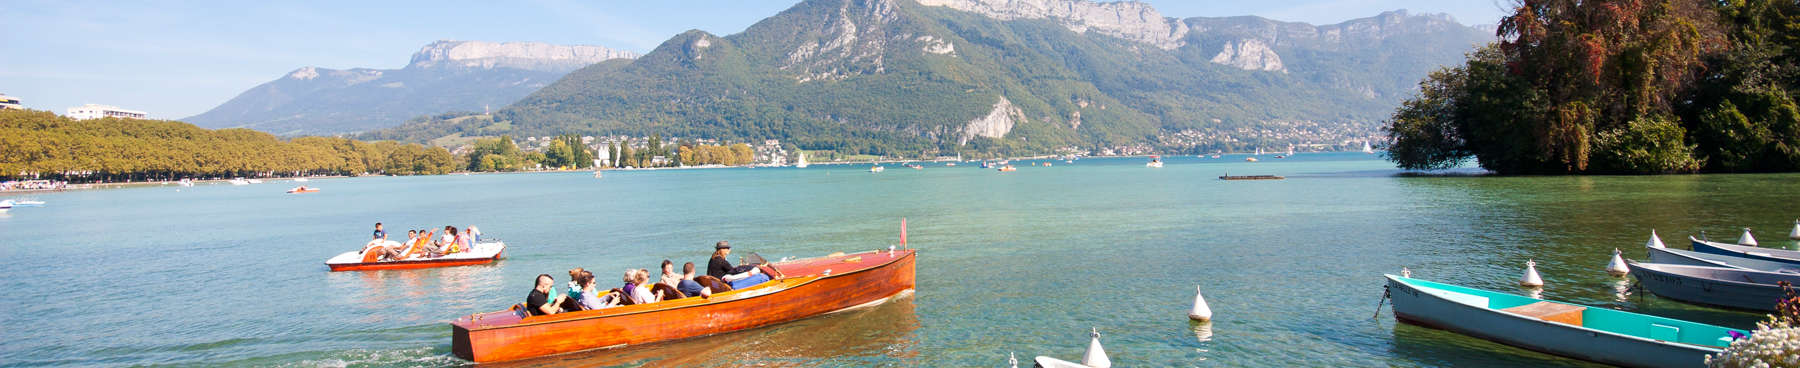 Teambuilding annecy